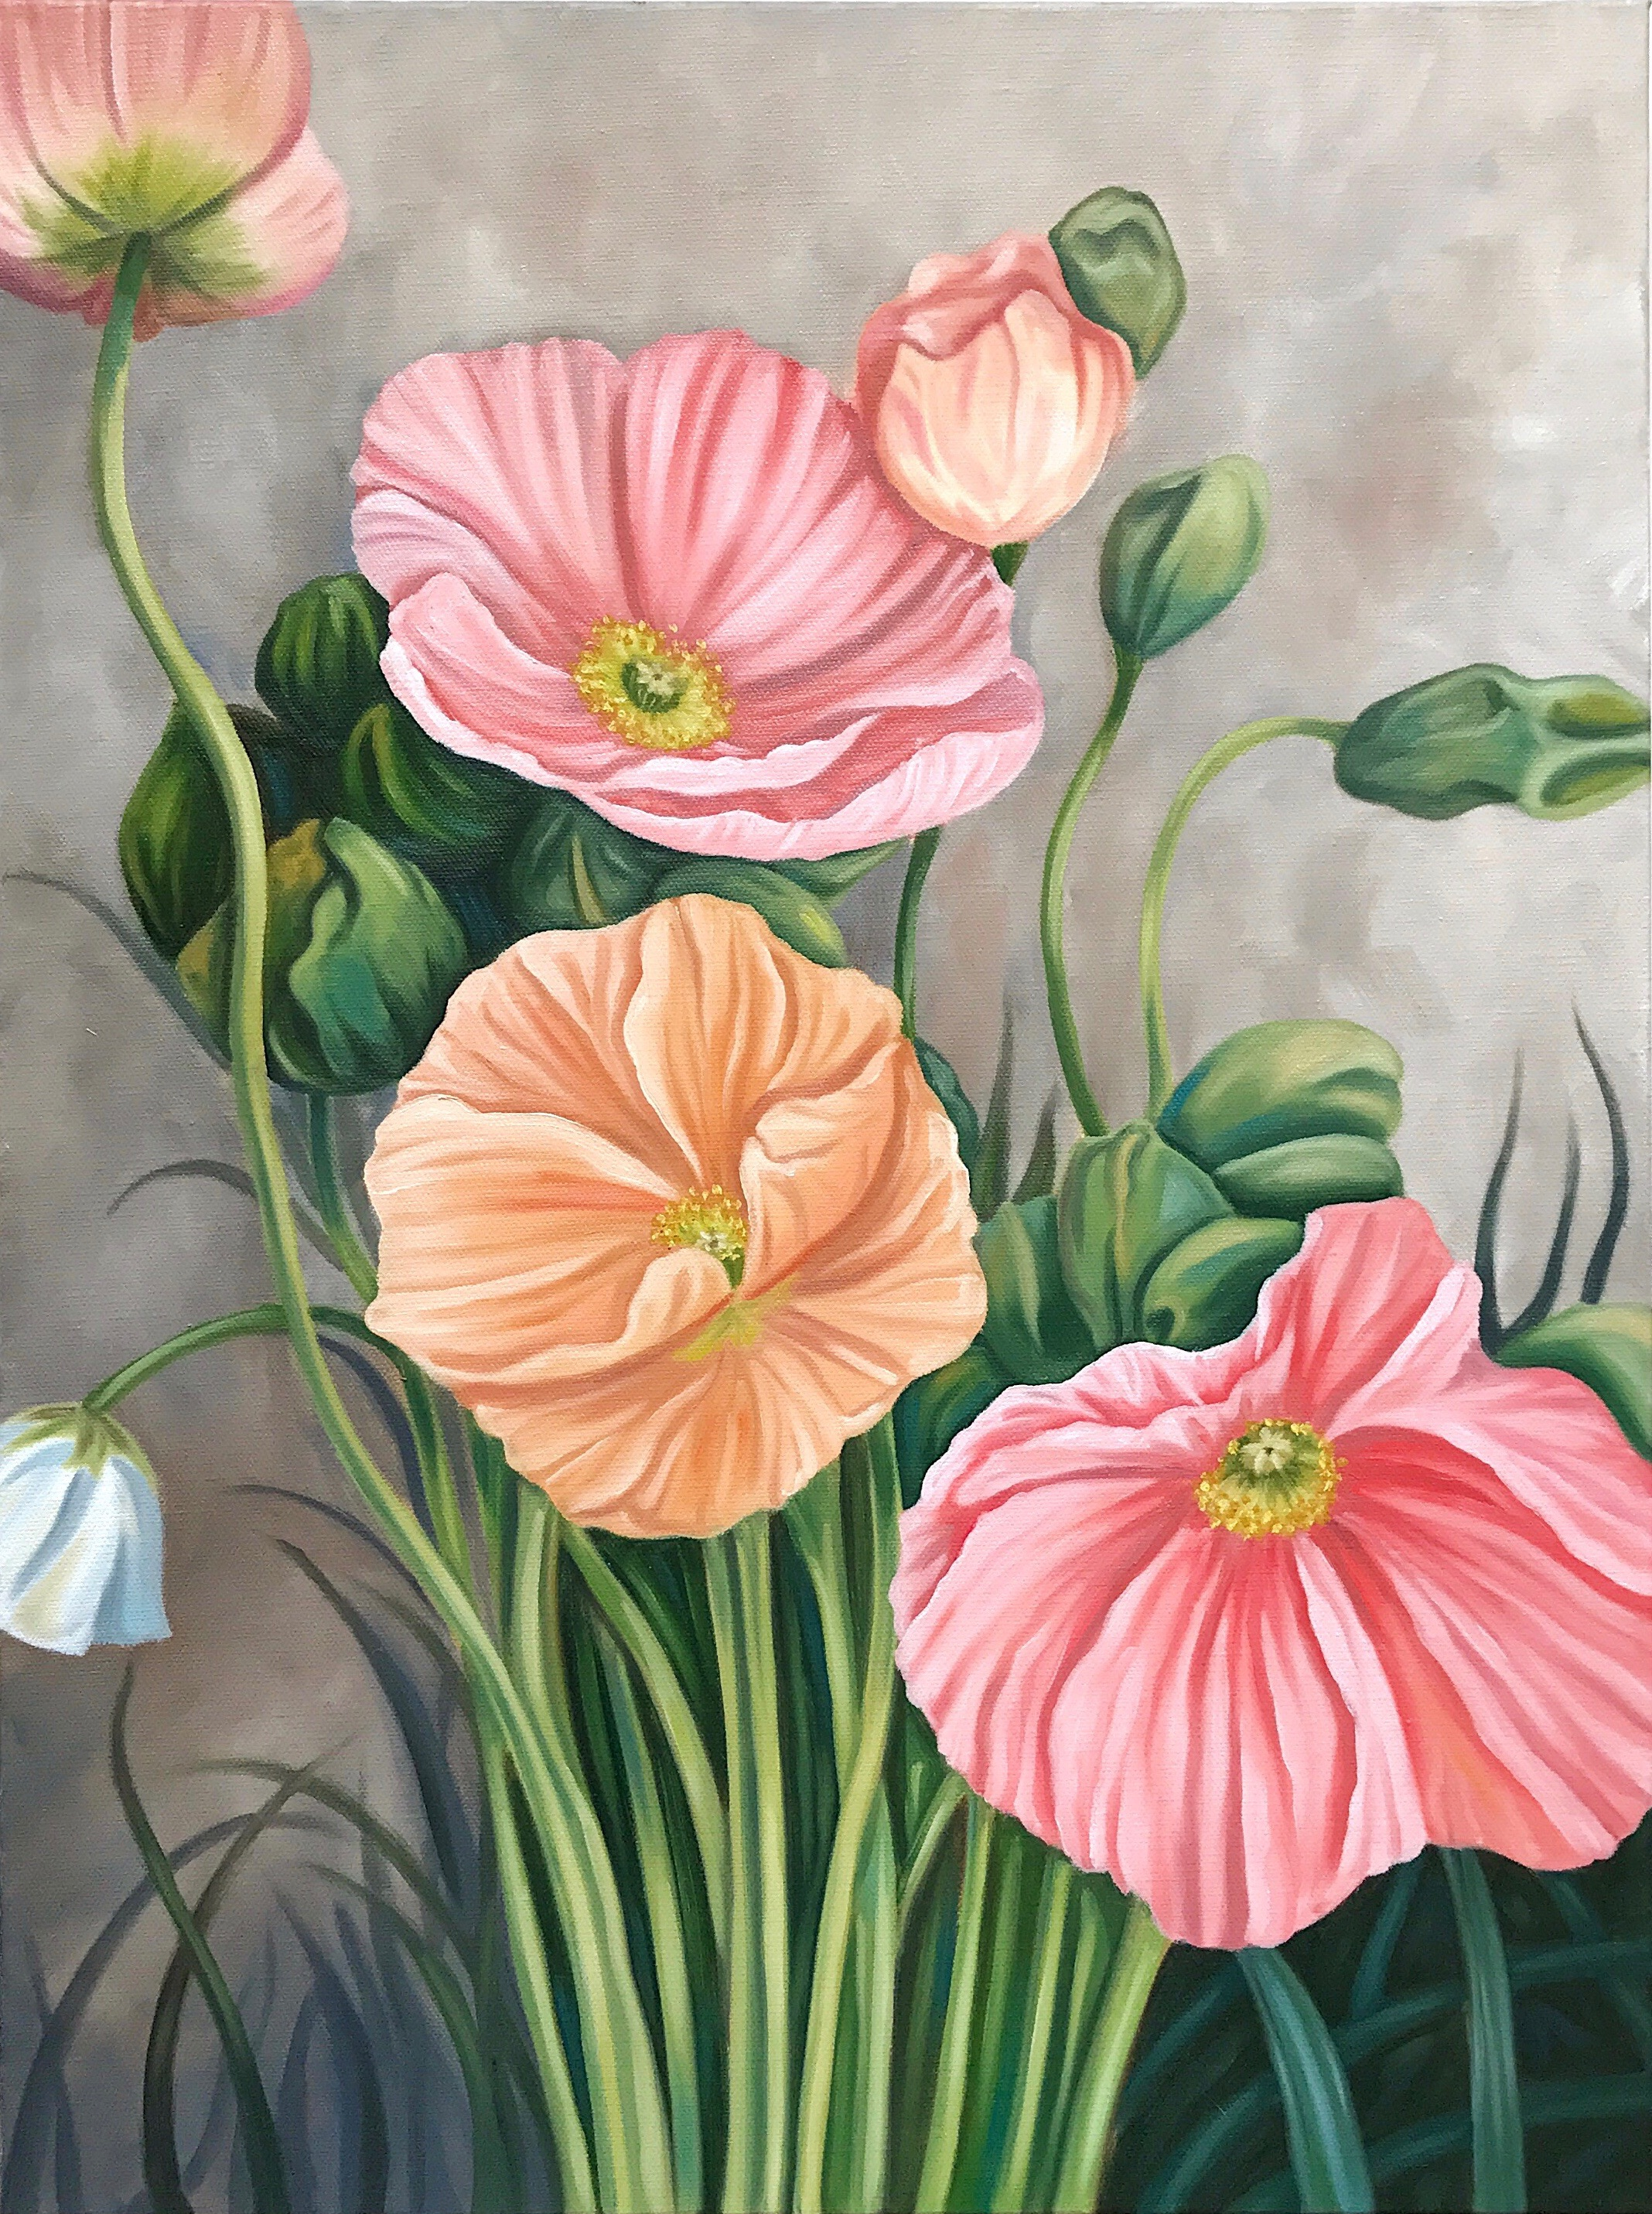 """Poppies, 18""""x24"""", Oil Paint on Canvas, 2017"""